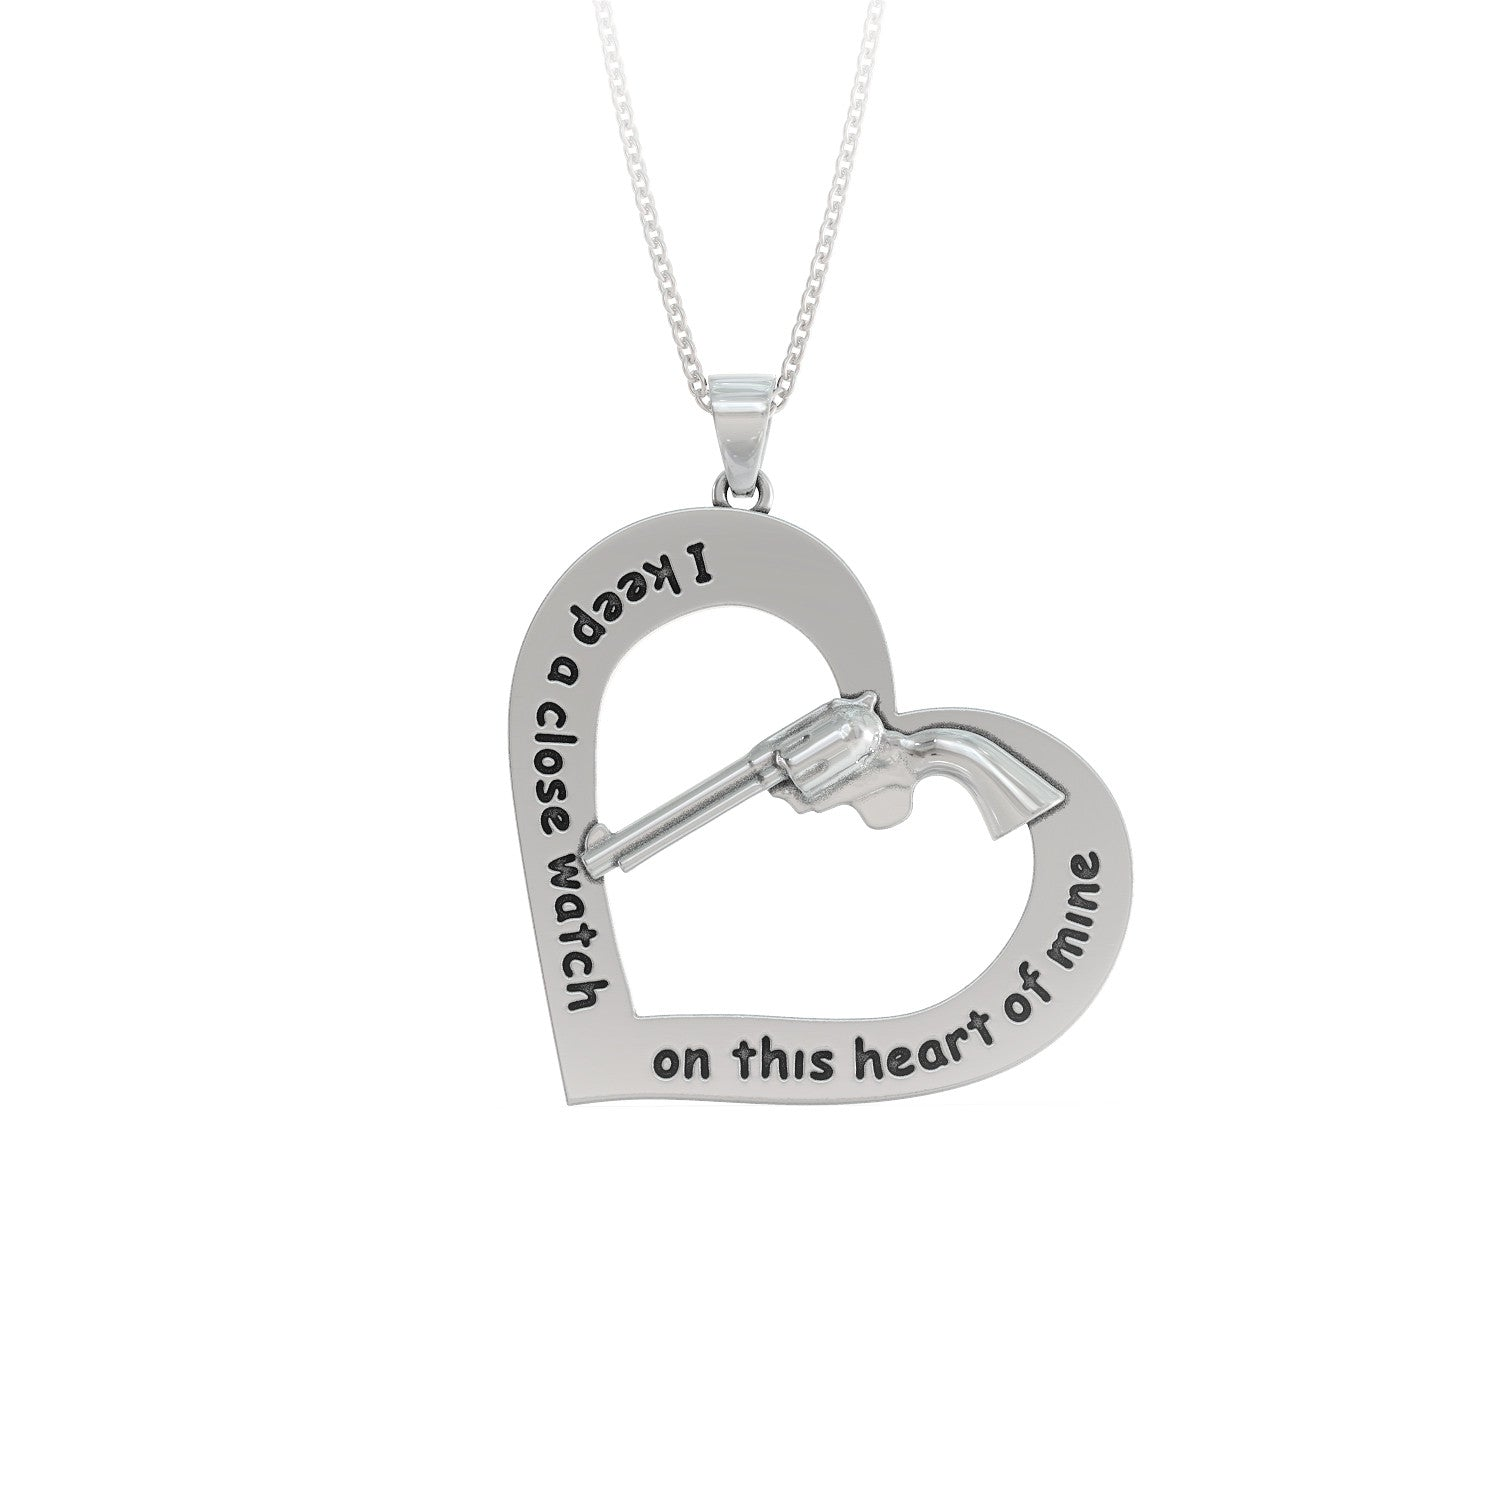 This Heart Of Mine Necklace